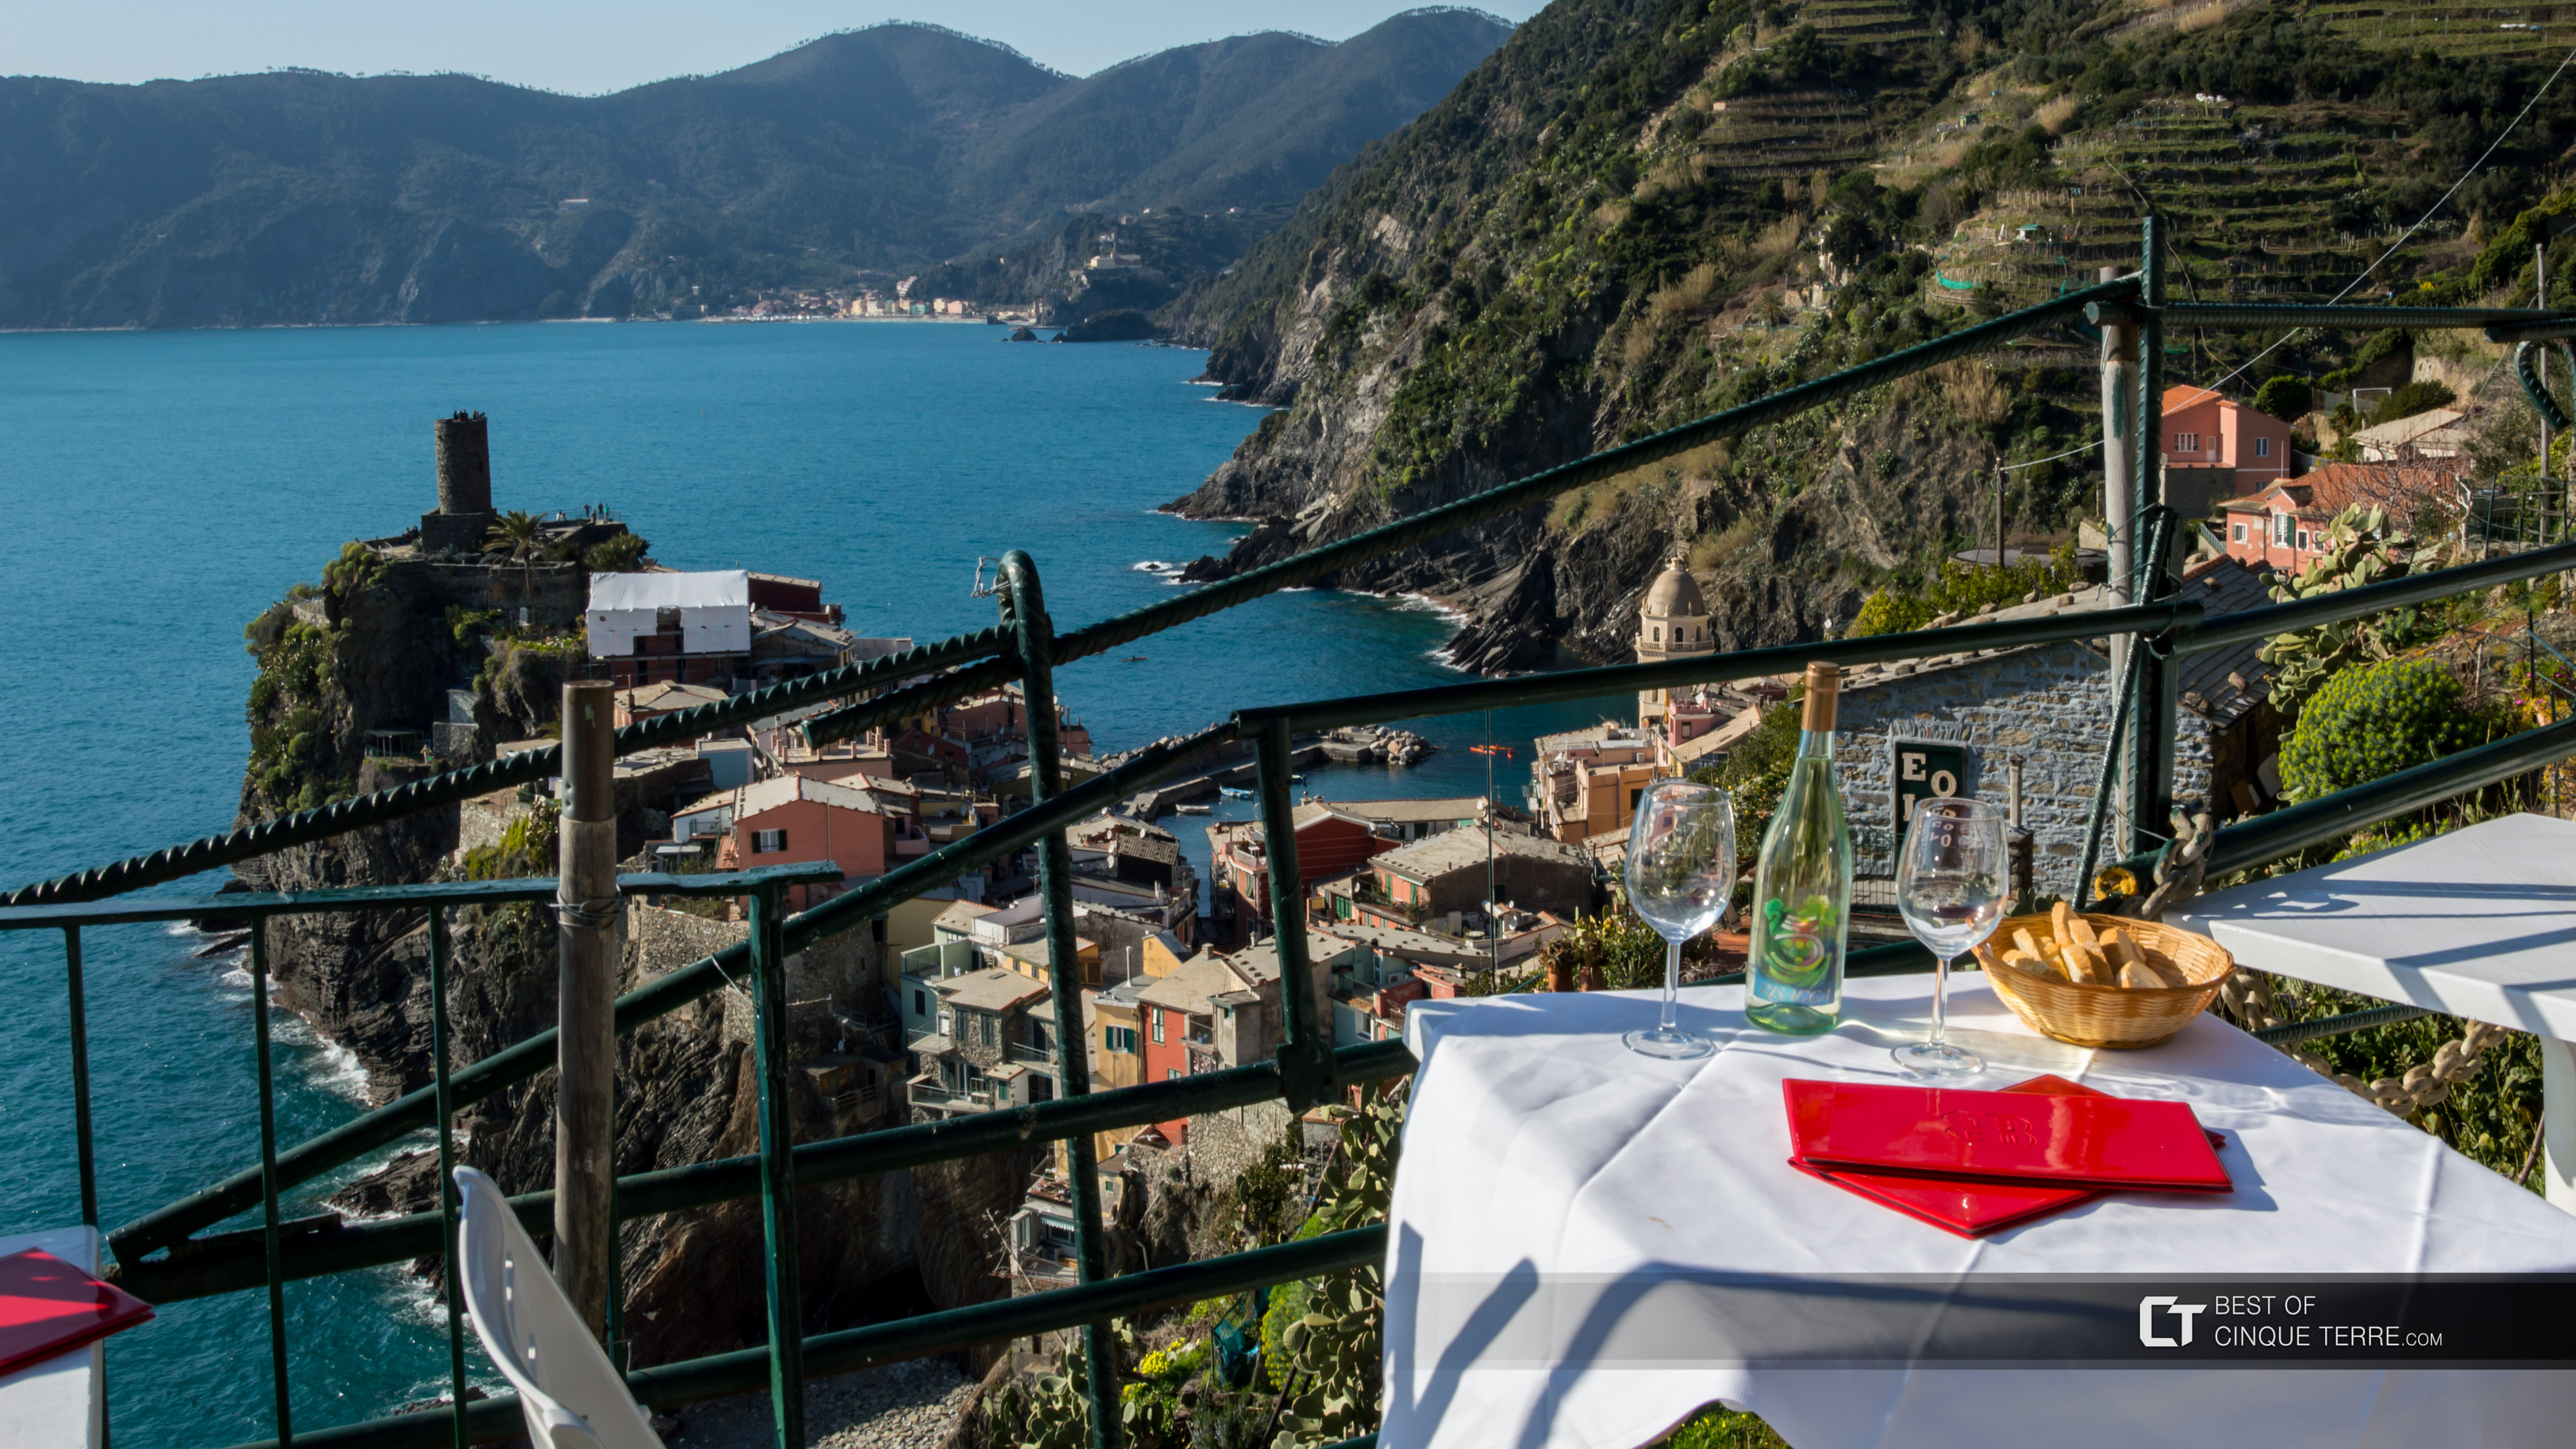 View of the village from the La Torre cafe, Vernazza, Cinque Terre, Italy